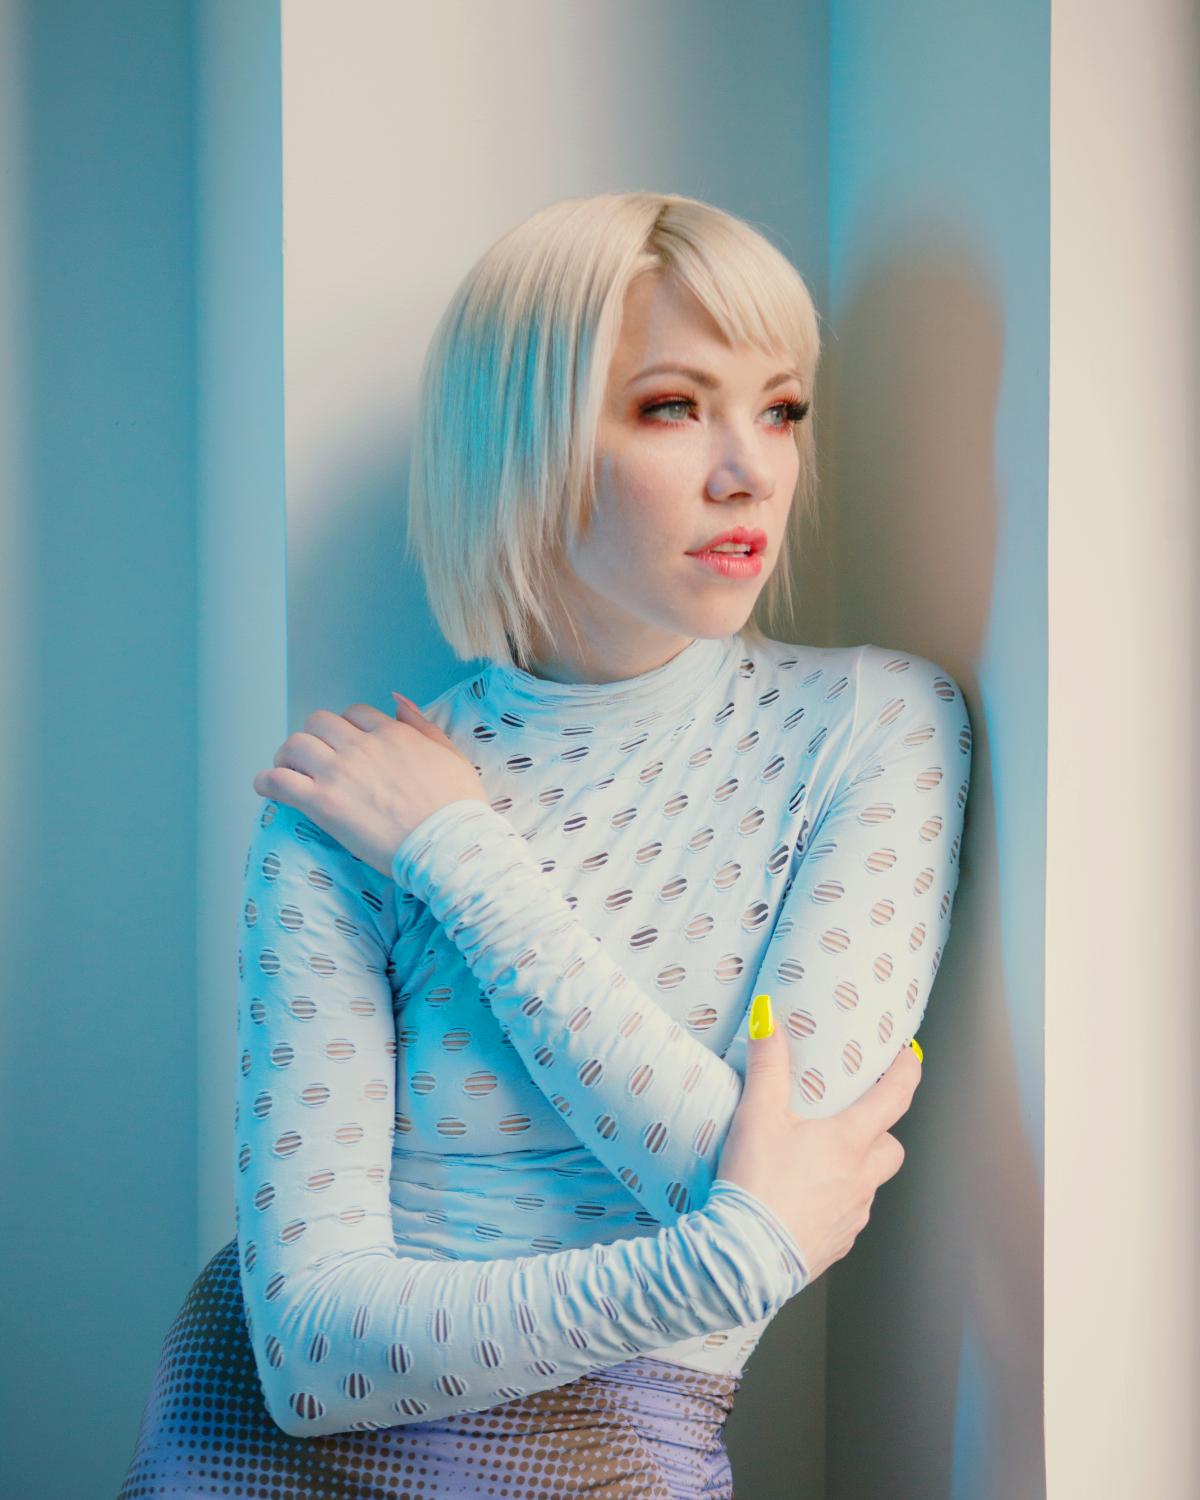 Art and Documentary Photography - Loading CarlyRaeJepsen_MaryKang_030.JPG